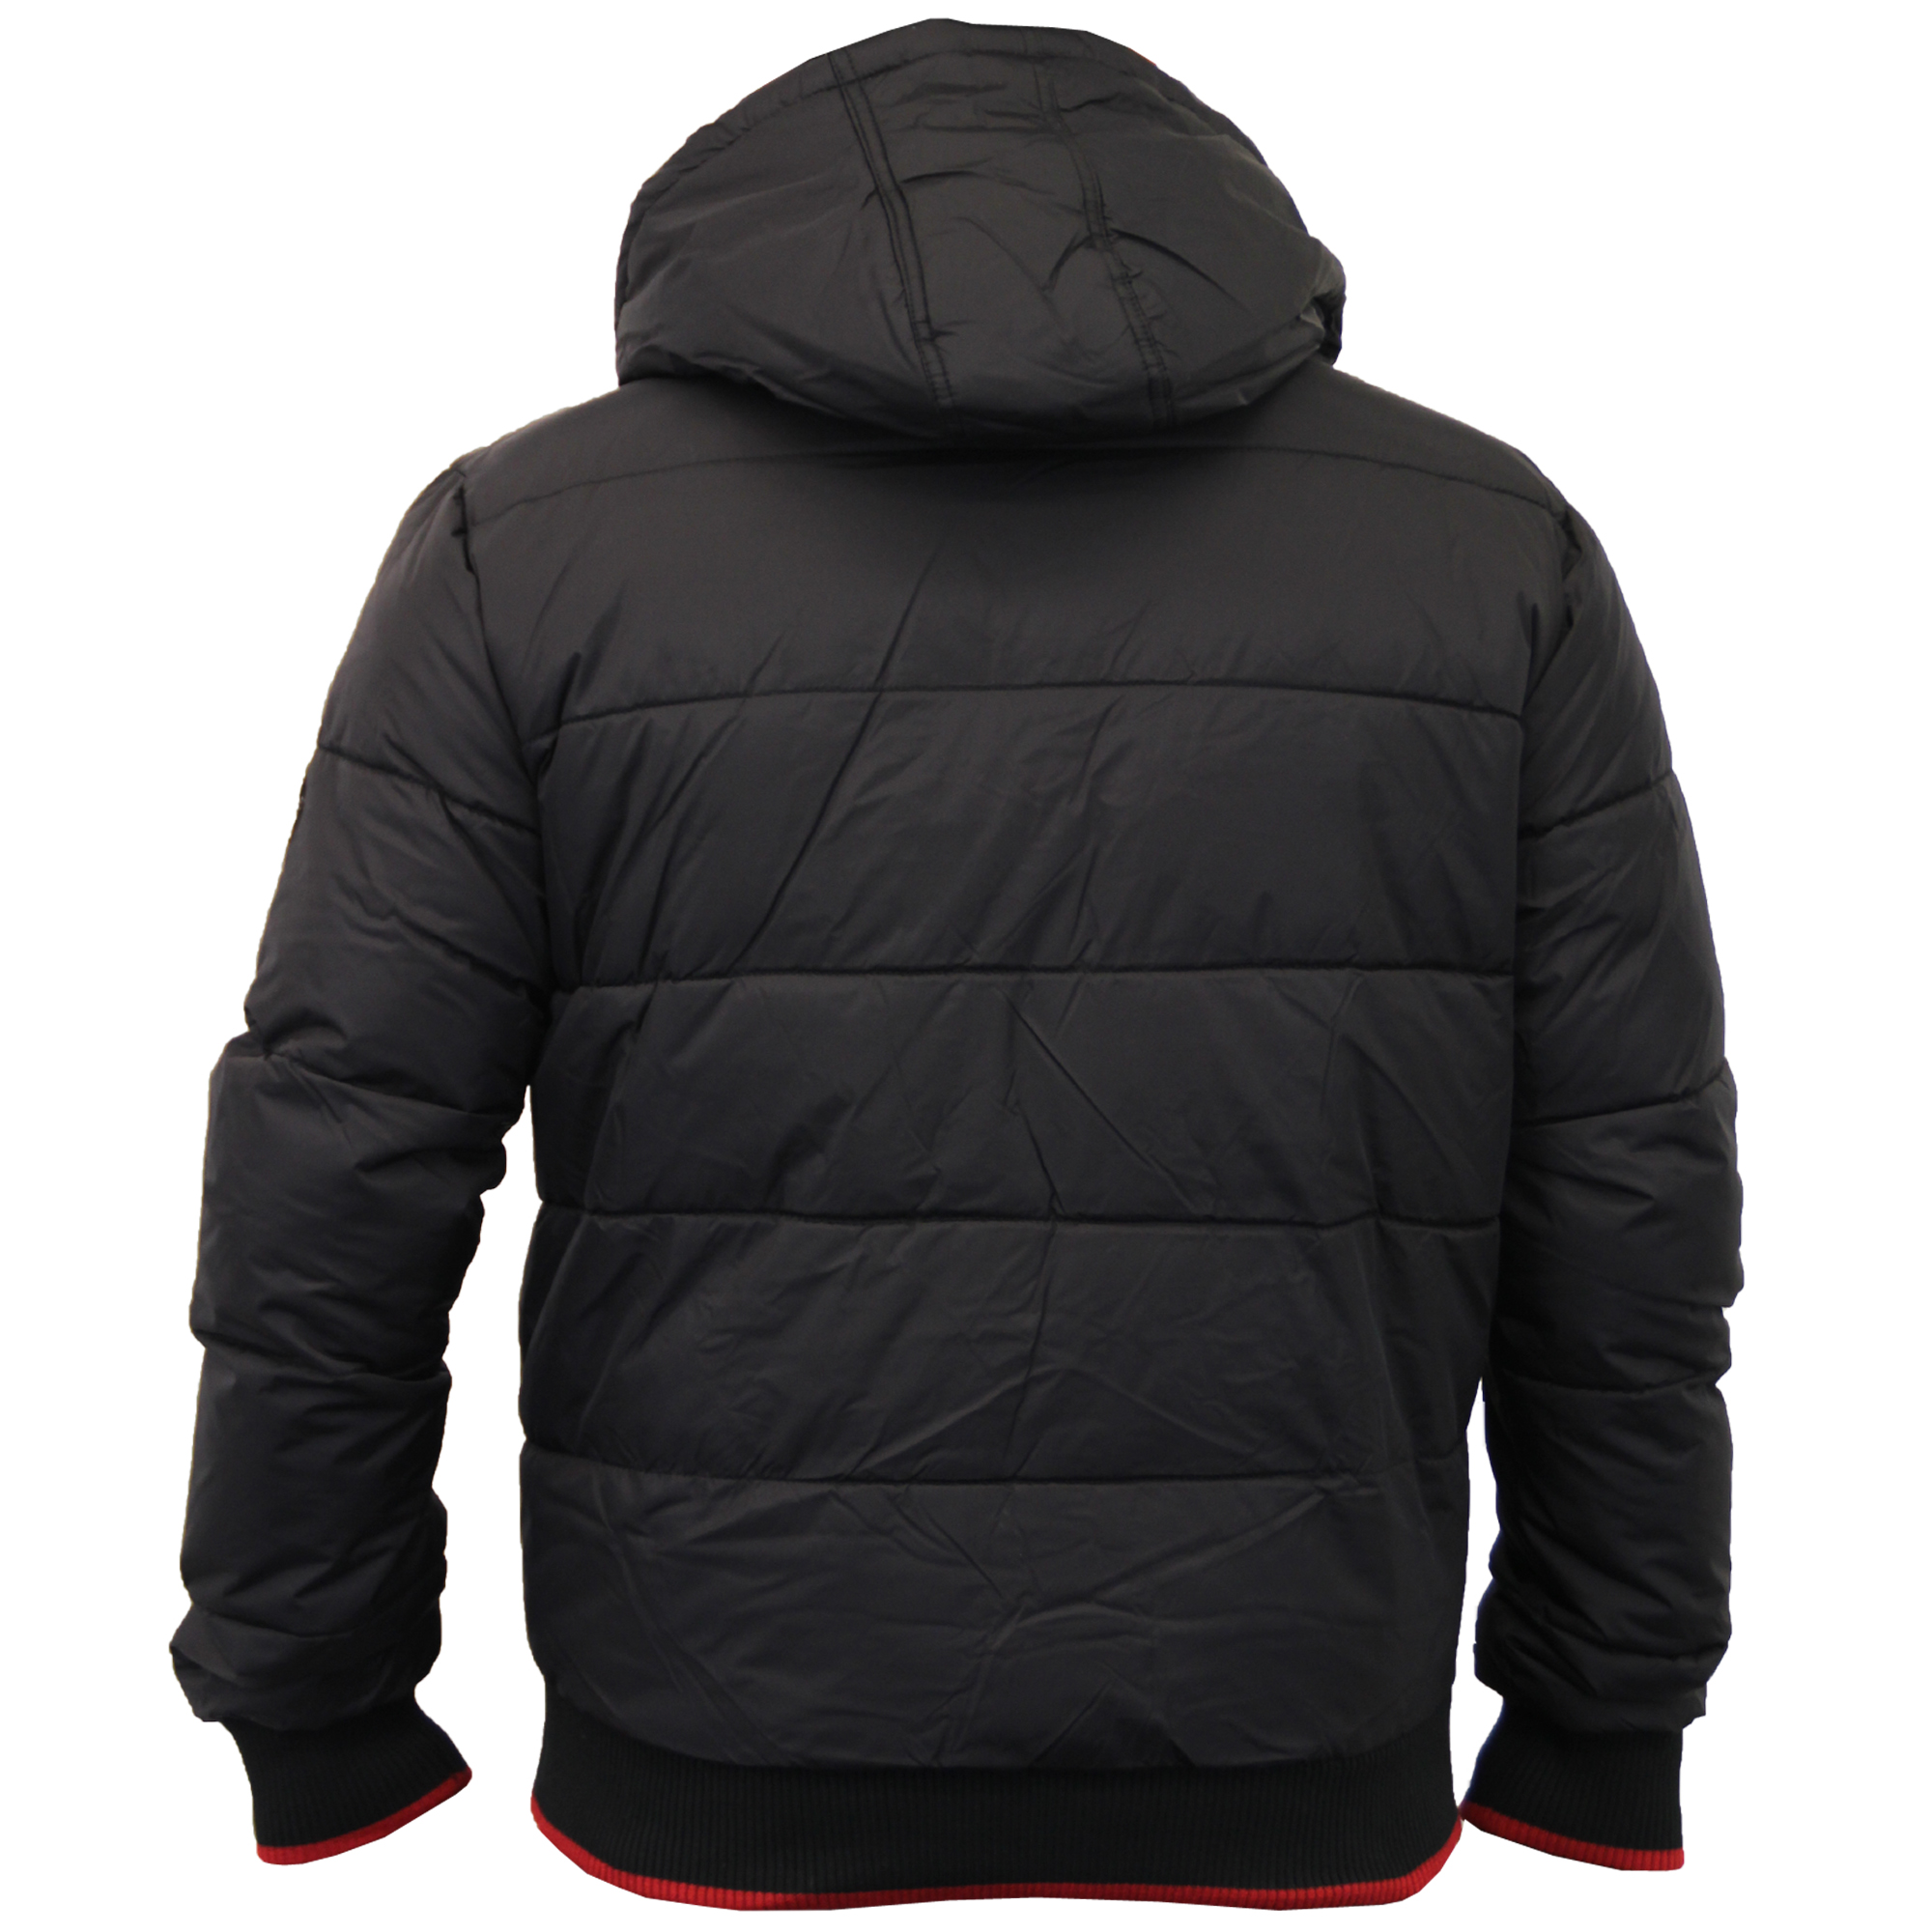 Padded Coats. Showing 48 of results that match your query. Search Product Result. Product - Women Padded Blazer Jacket Long Sleeve Cardigan Zip Up Tops Outwear Biker Coat Motorcycle Overcoat Plus Size. Men Winter Hooded Thick Padded Jacket Zipper Slim Outwear Coat Warm Outwear Coat.